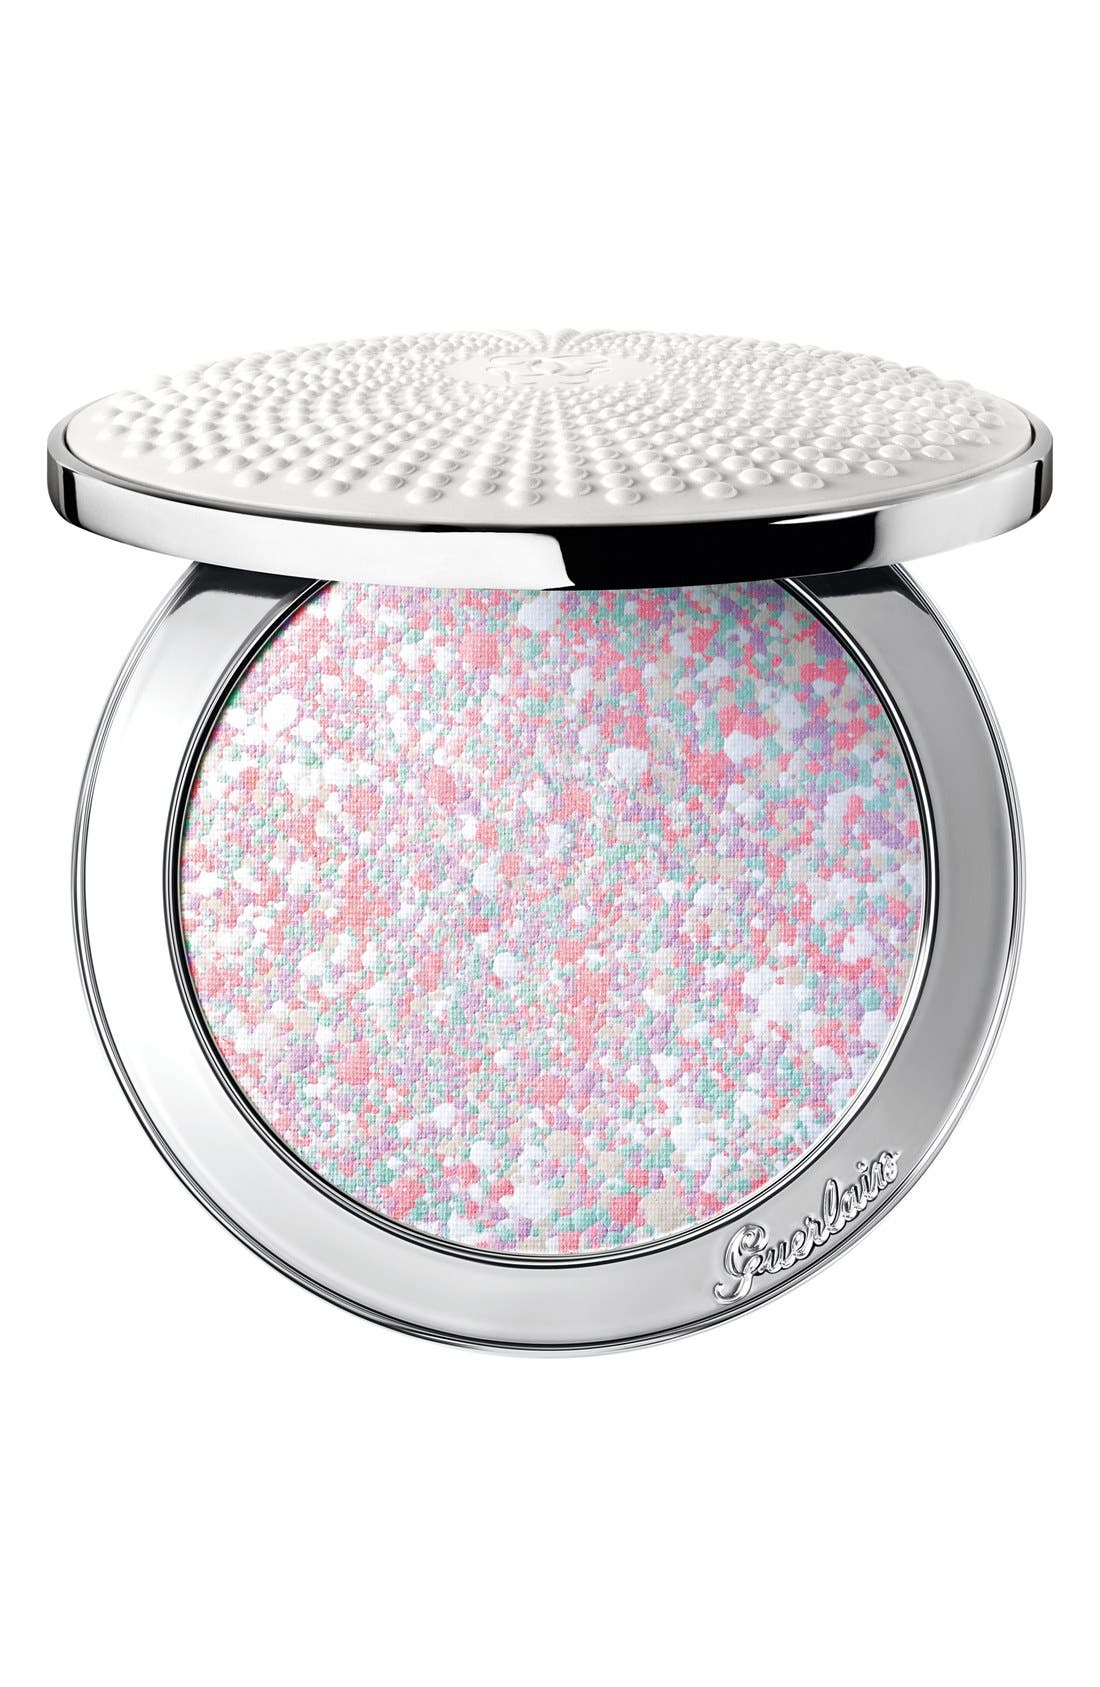 Météorites Voyage Pearls of Powder Refillable Compact,                         Main,                         color, NO COLOR